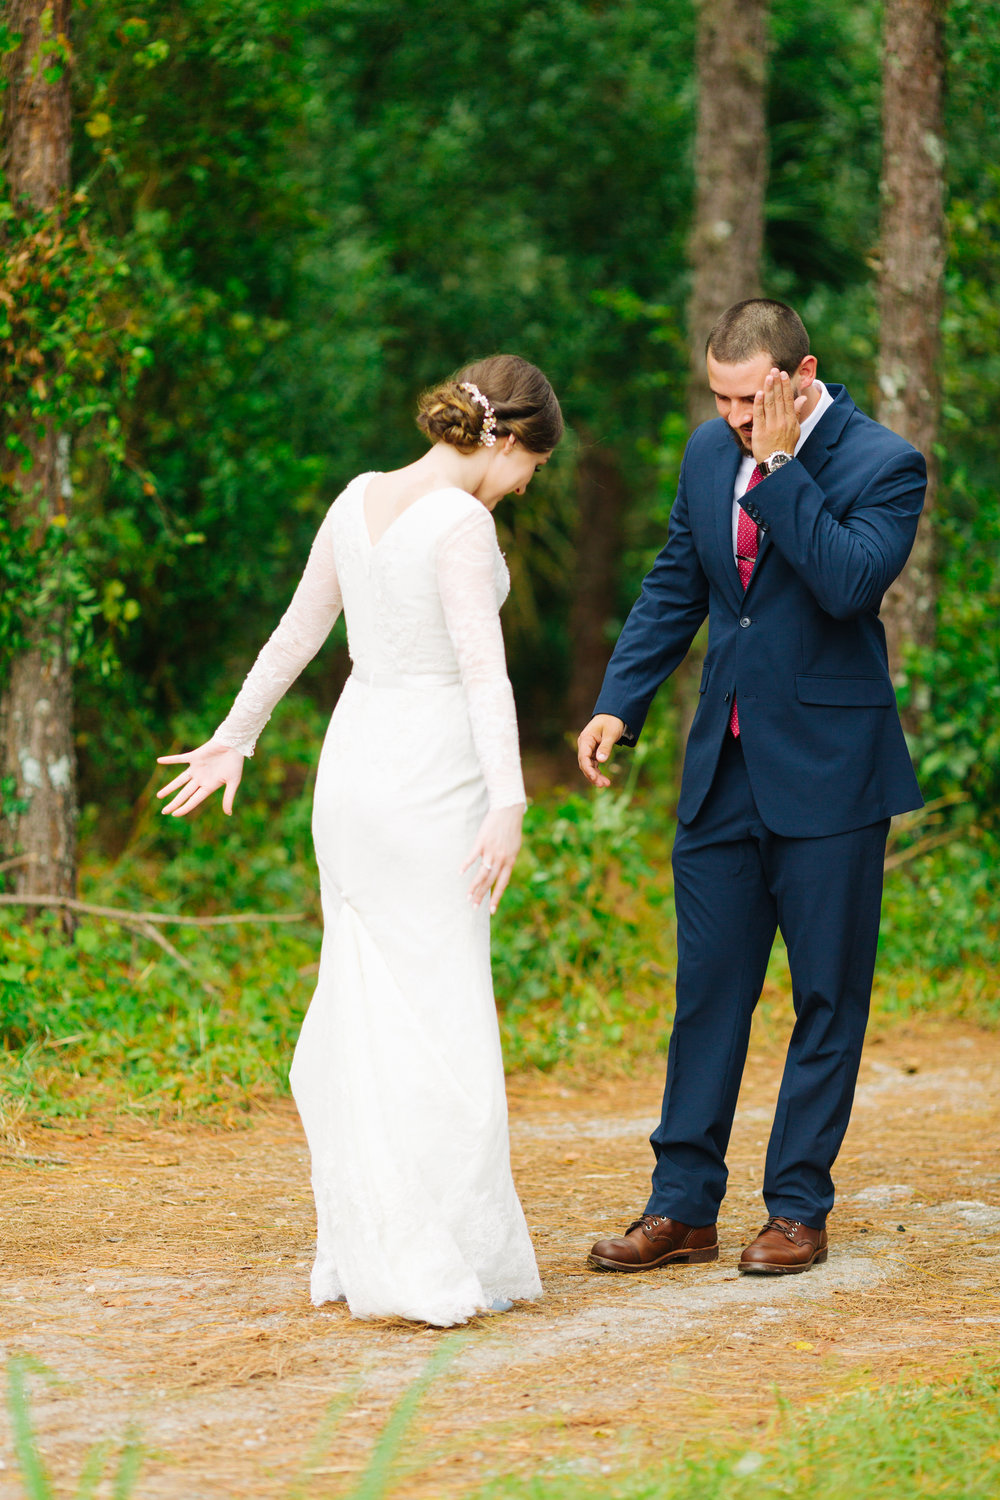 Caleb & Arielle's Wedding - Portraits - Jake & Katie Photography_013.jpg